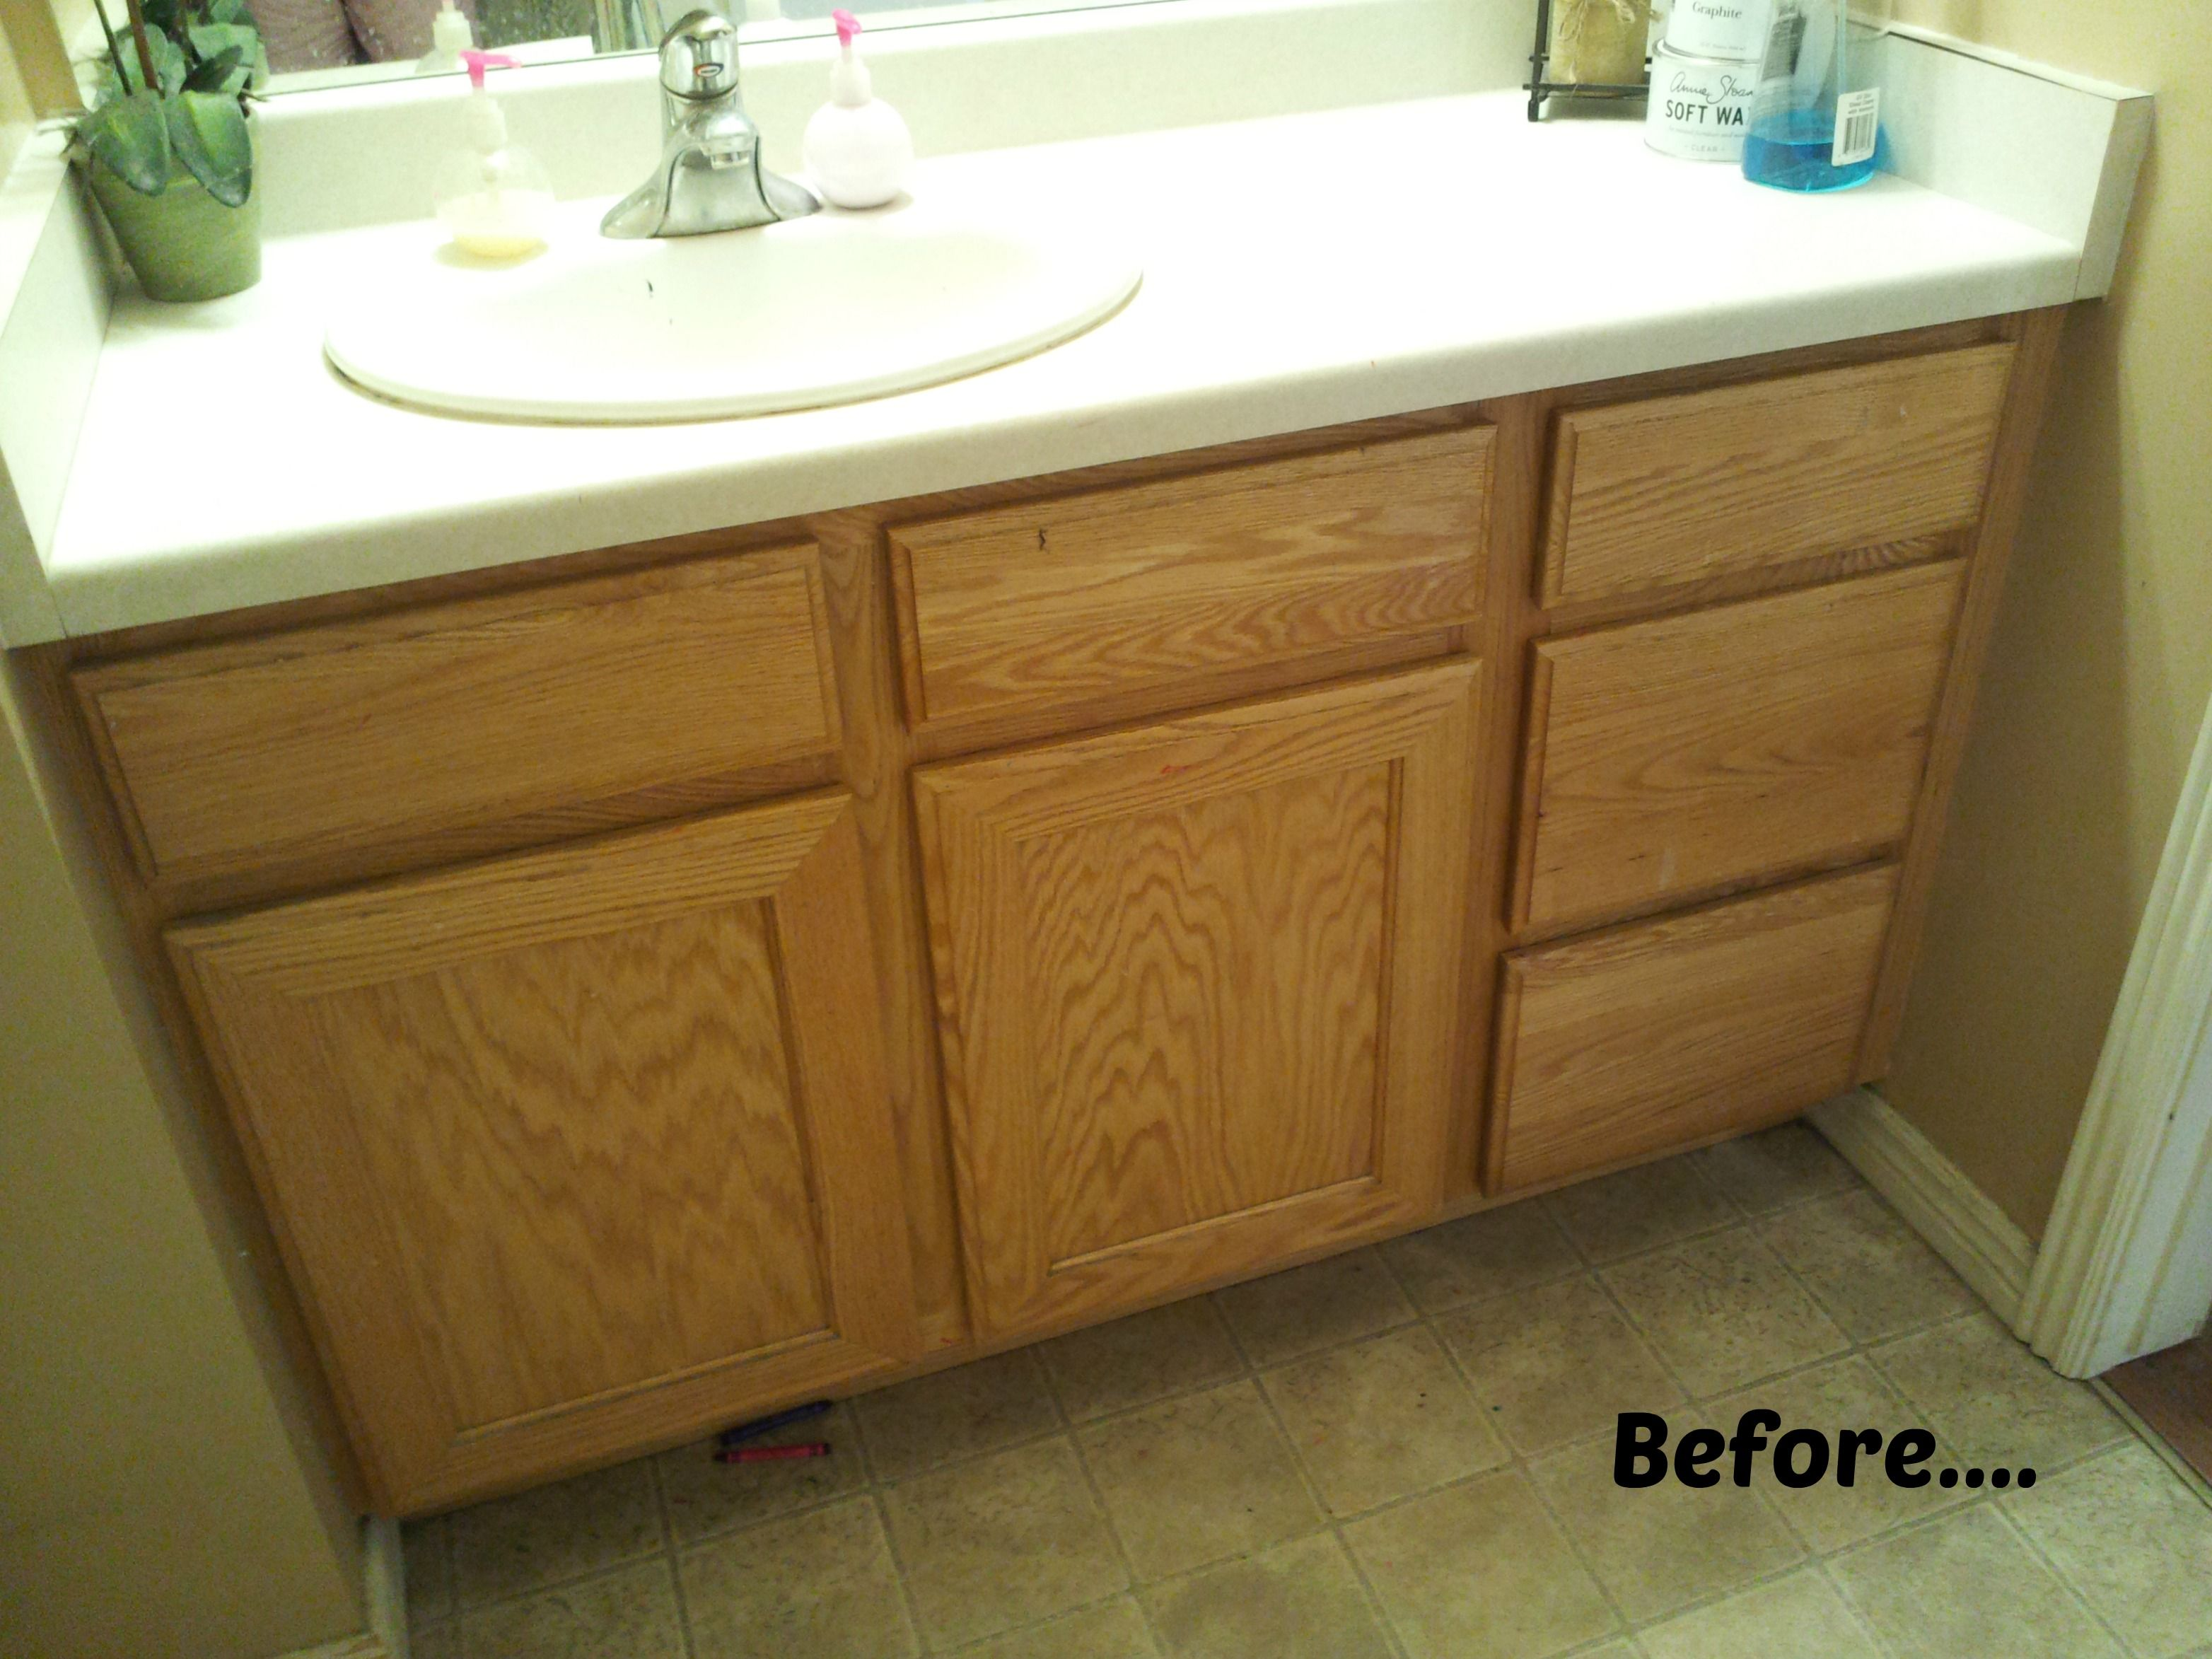 Refinish Bathroom Cabinets Bathroom Vanity Redo Ideas  Pinterdor  Pinterest  Vanity Redo .